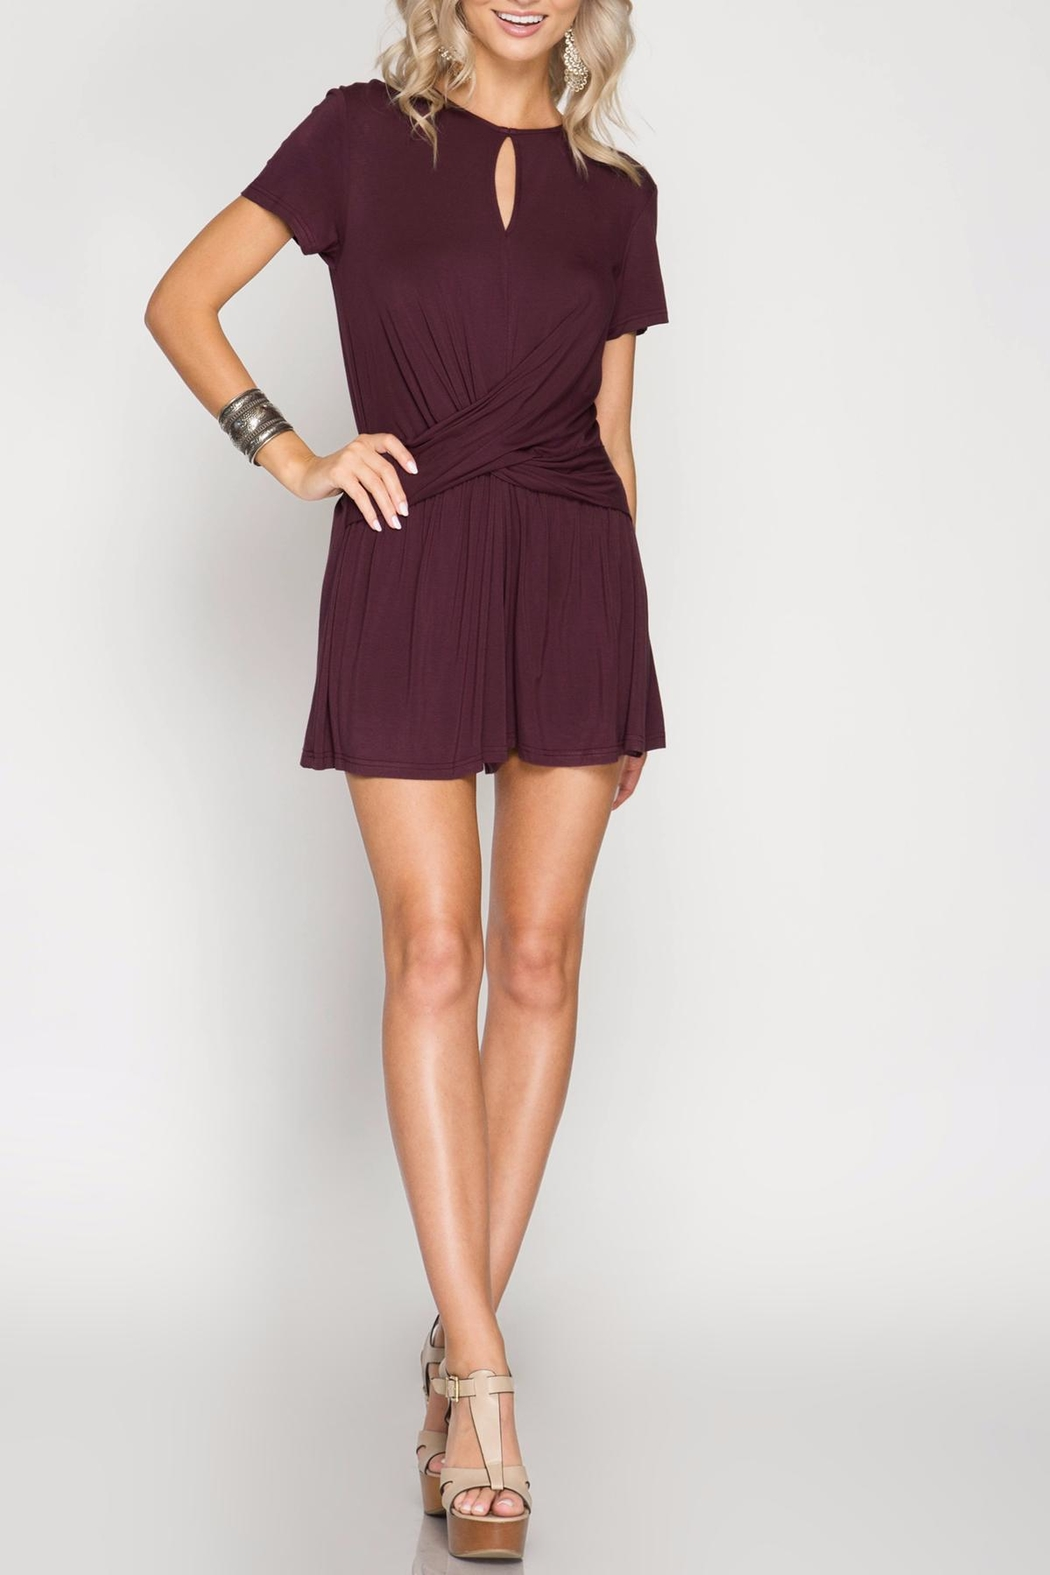 She + Sky Twist Front Romper - Main Image